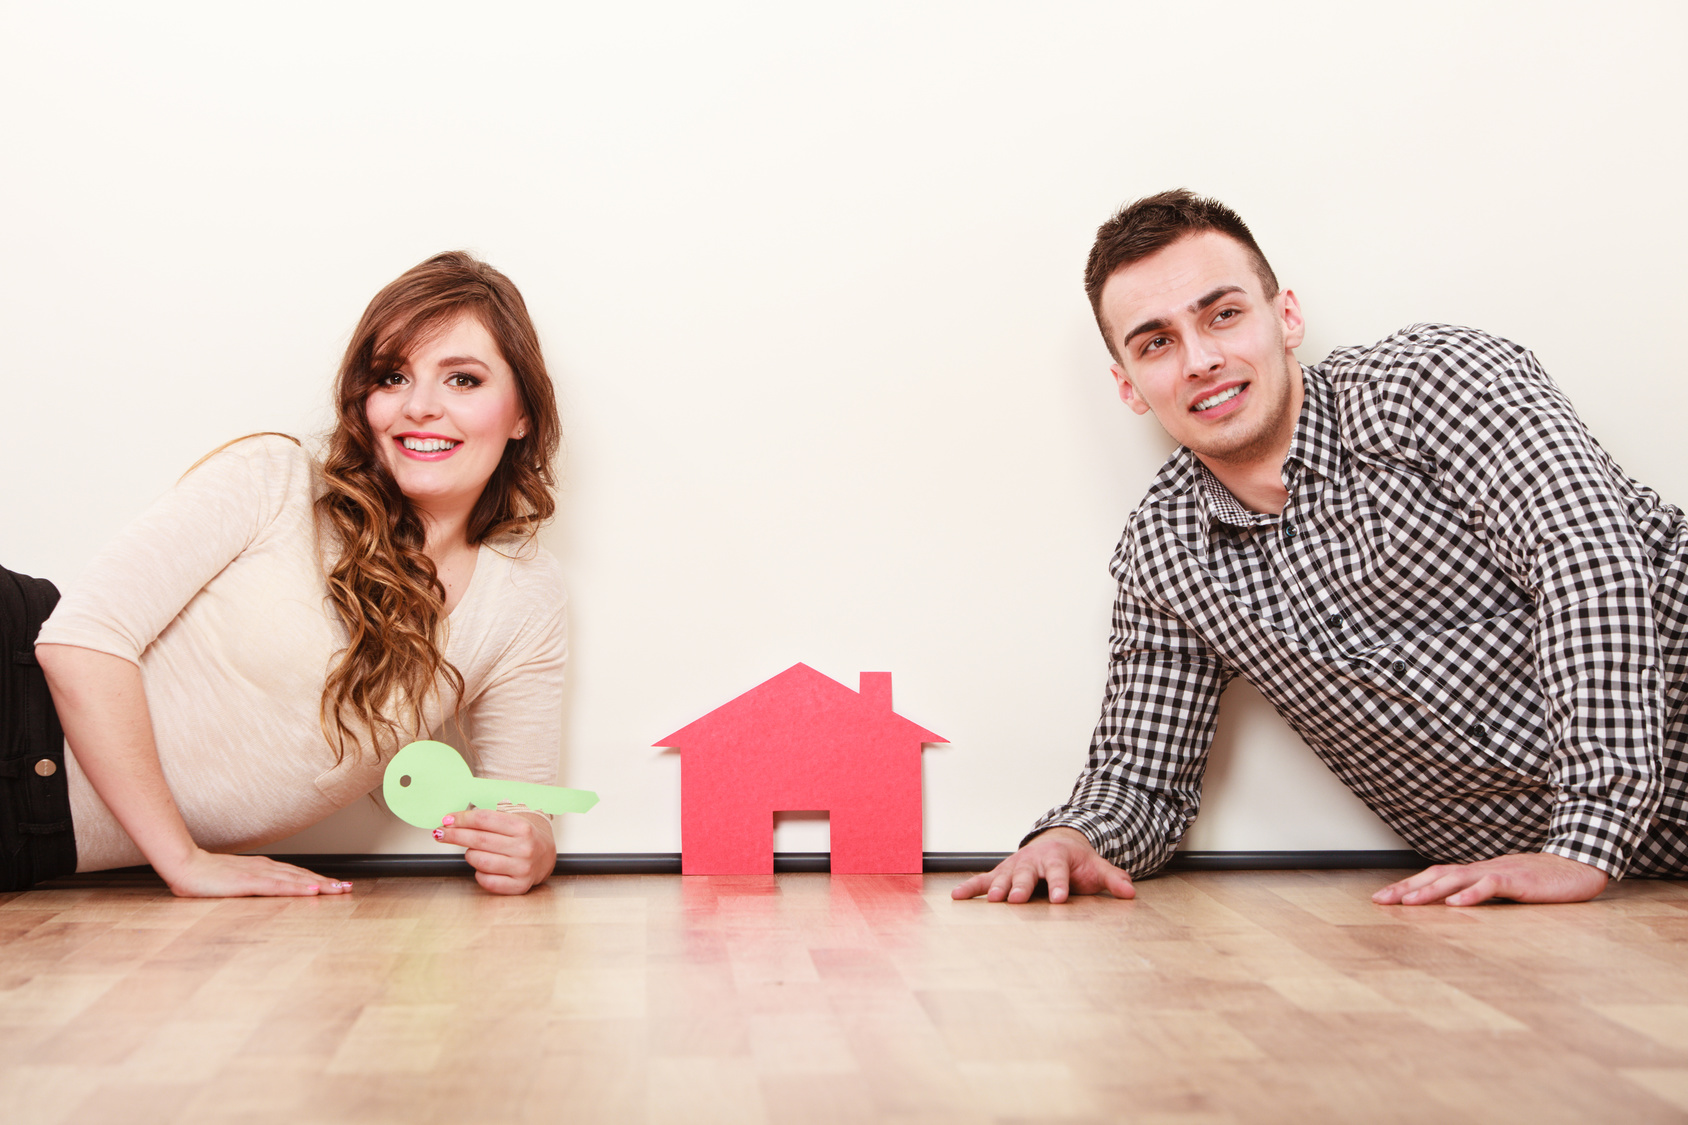 Smiling young couple laying on floor holding paper house and key. Husband and wife dreaming about new home. Housing and real estate concept.